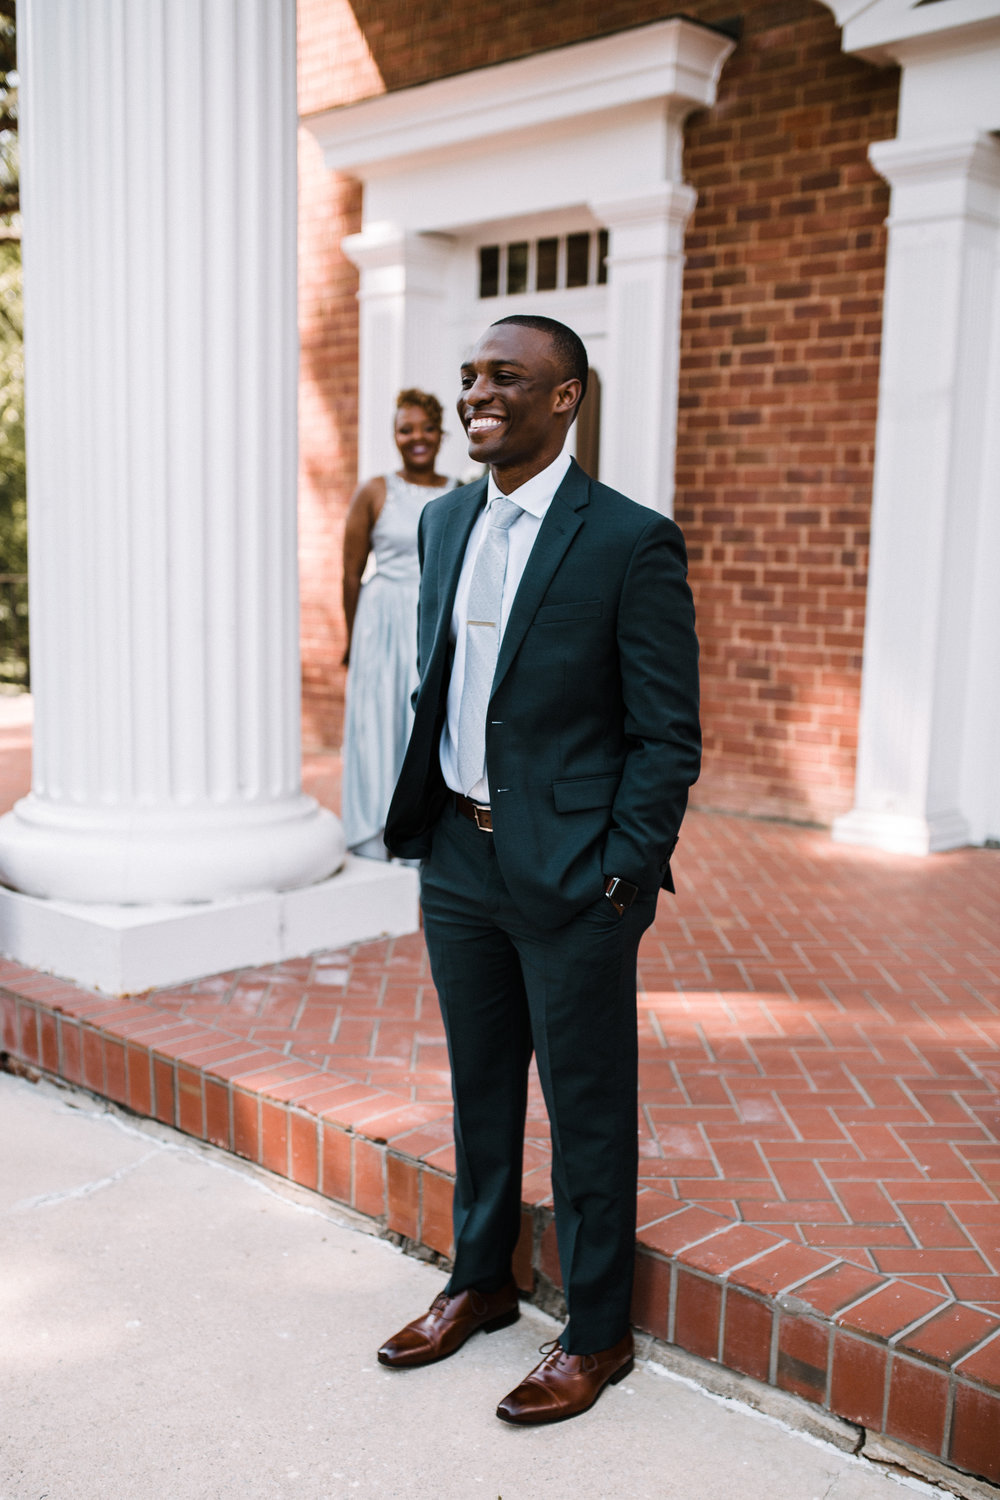 charlotte-NC-wedding-photographer-catawba-10-oakhurst-baptist-church-wedding-2778.jpg